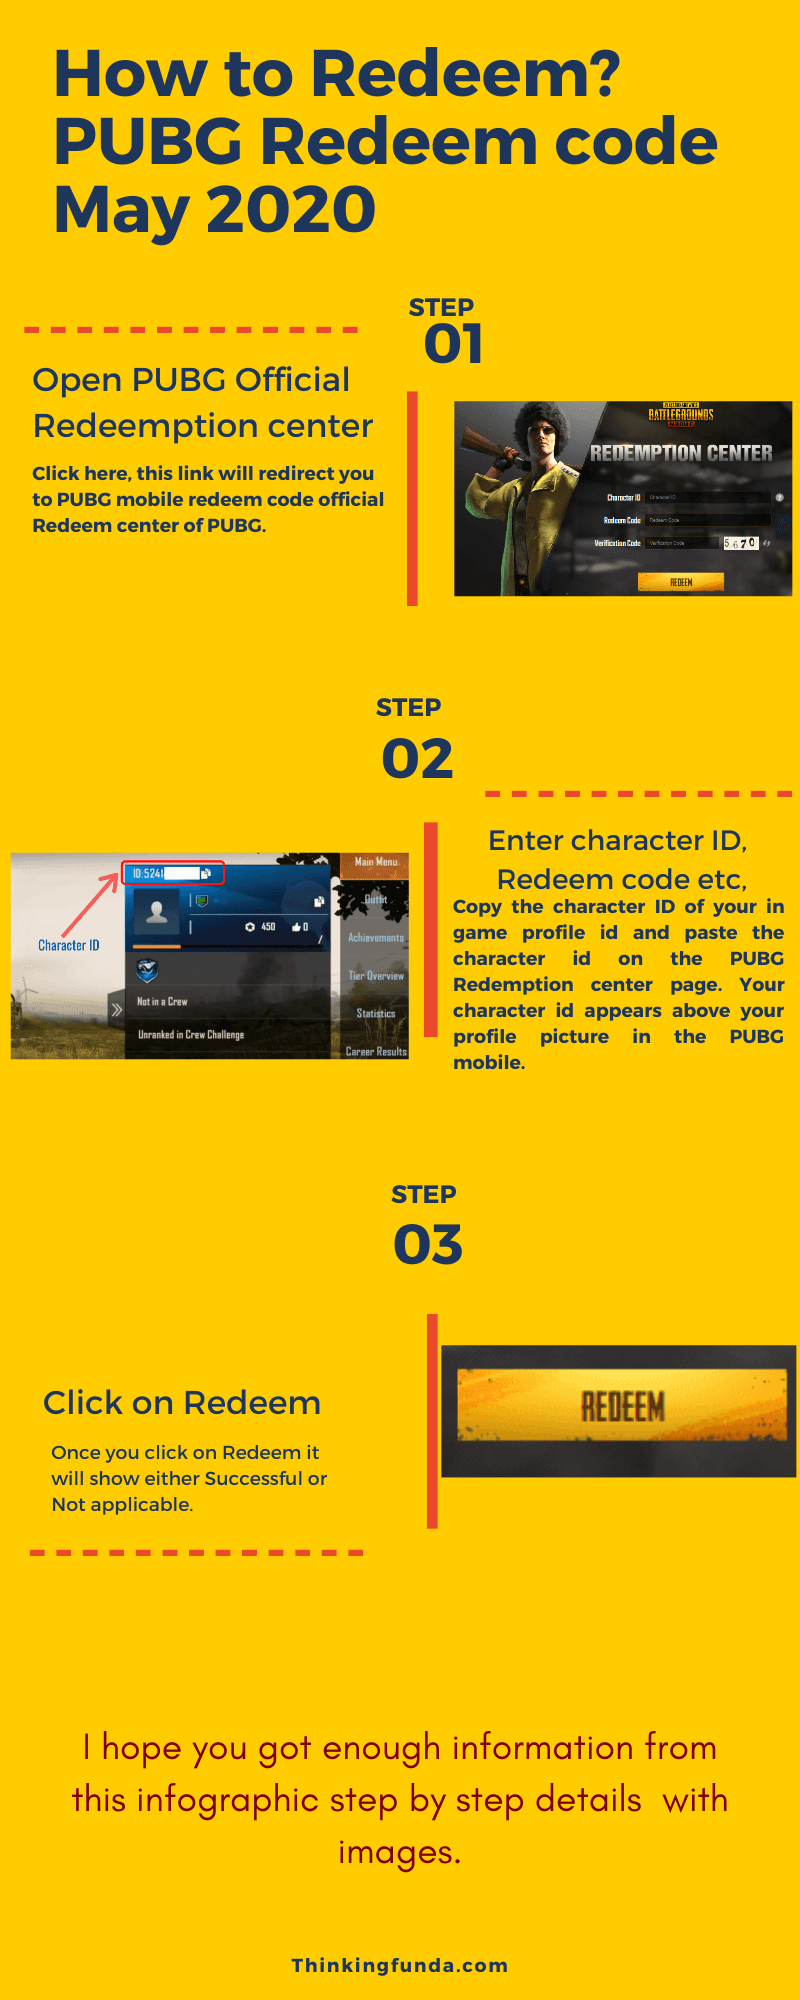 PUBG Redeem code may 2020 Infographic